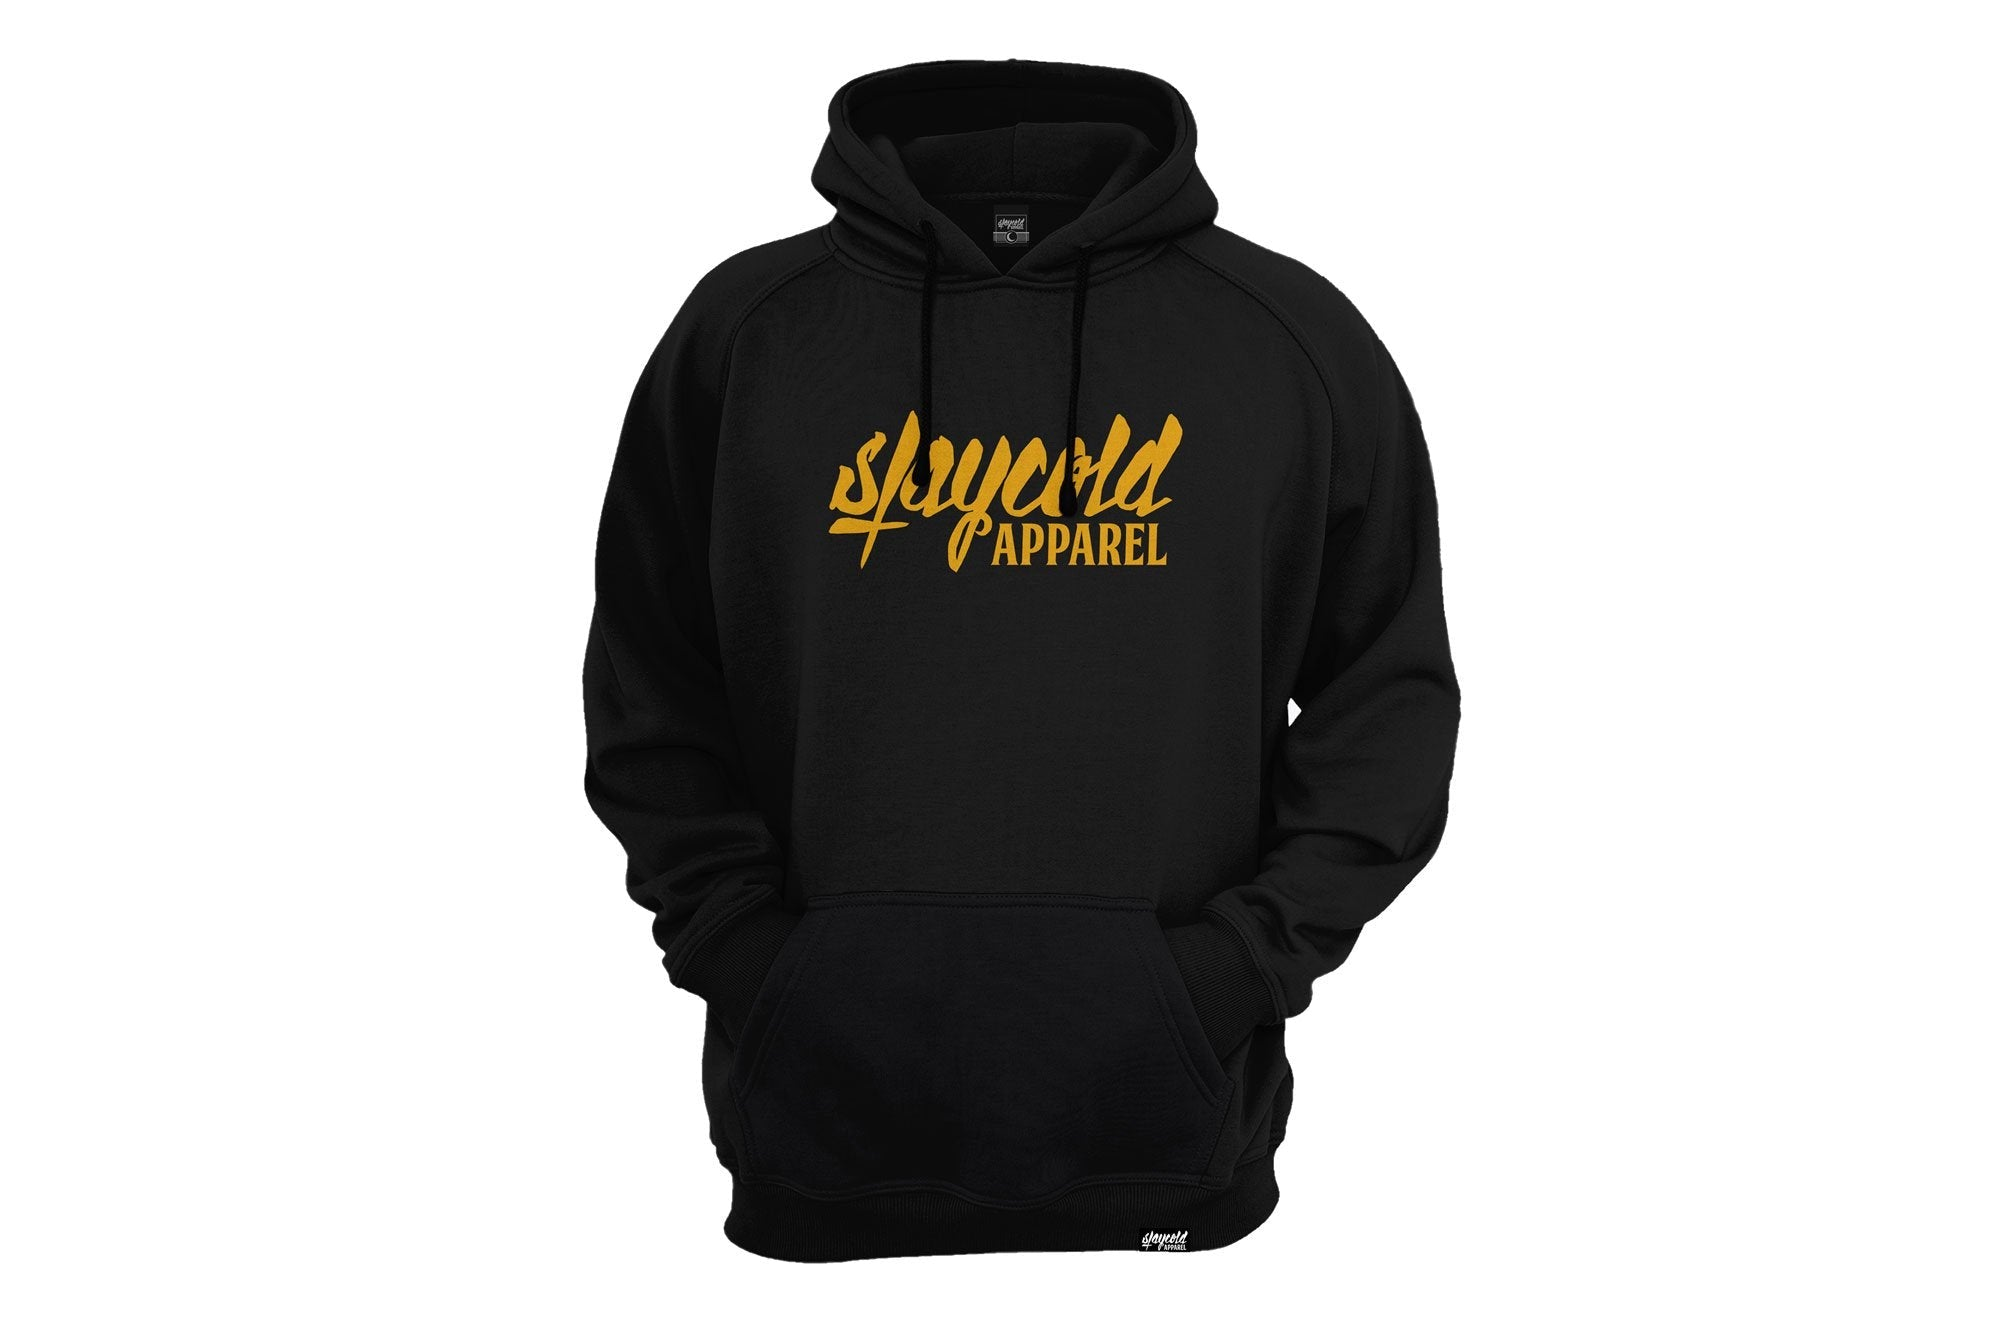 Stay Cold Ltd. Hoodie Black Orange